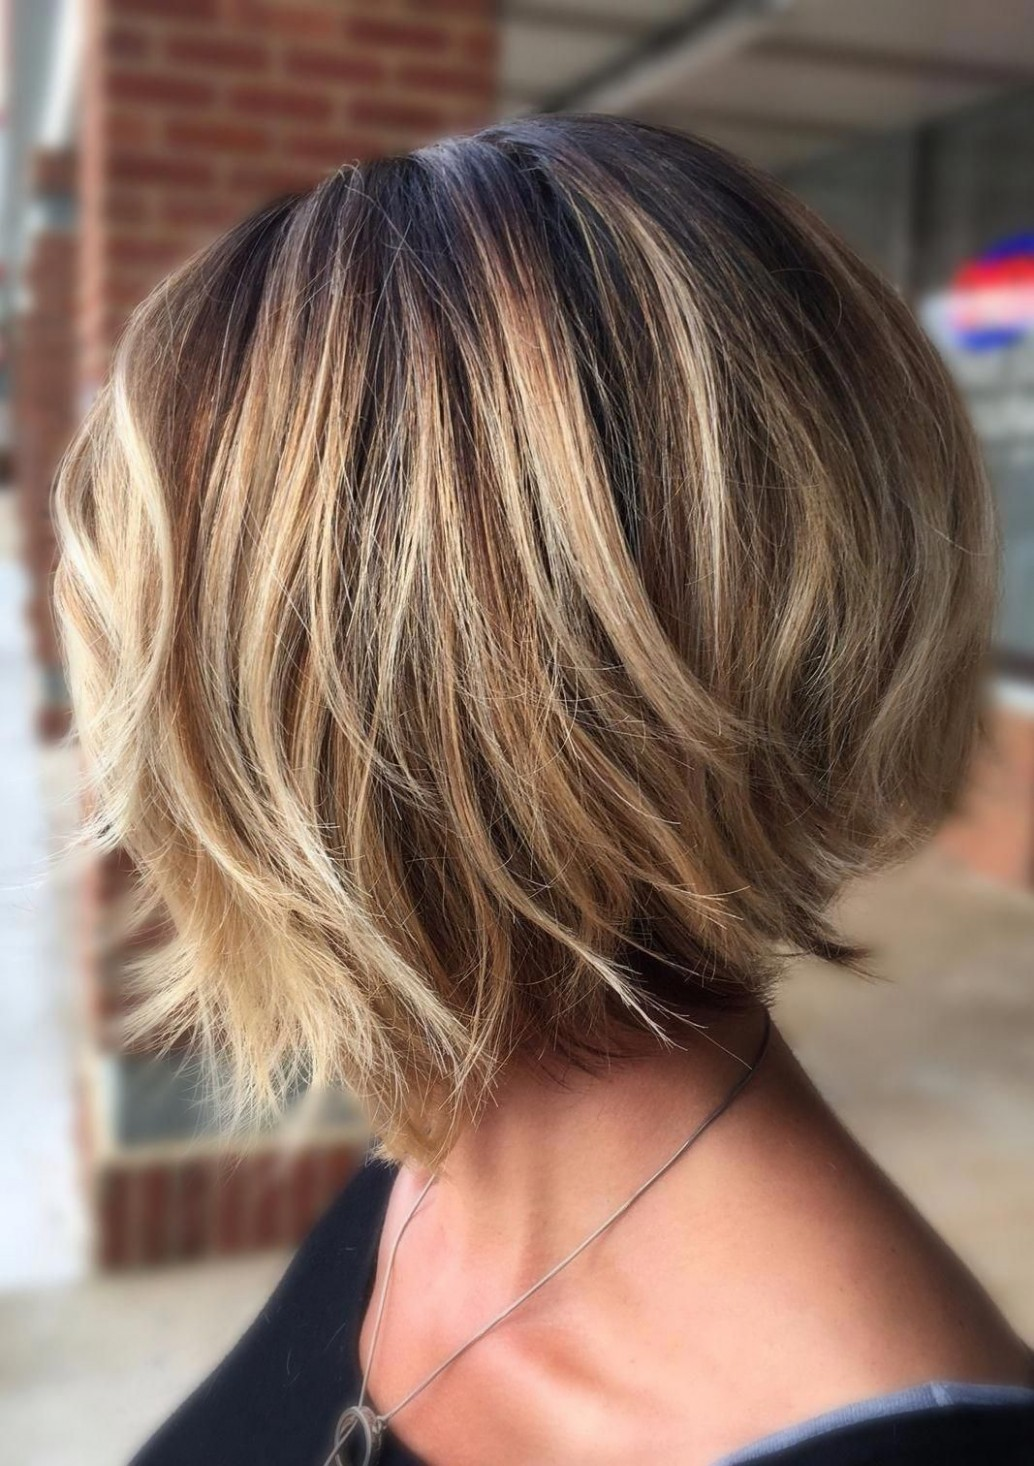 These Layered Bob Hairstyles Are Fabulous